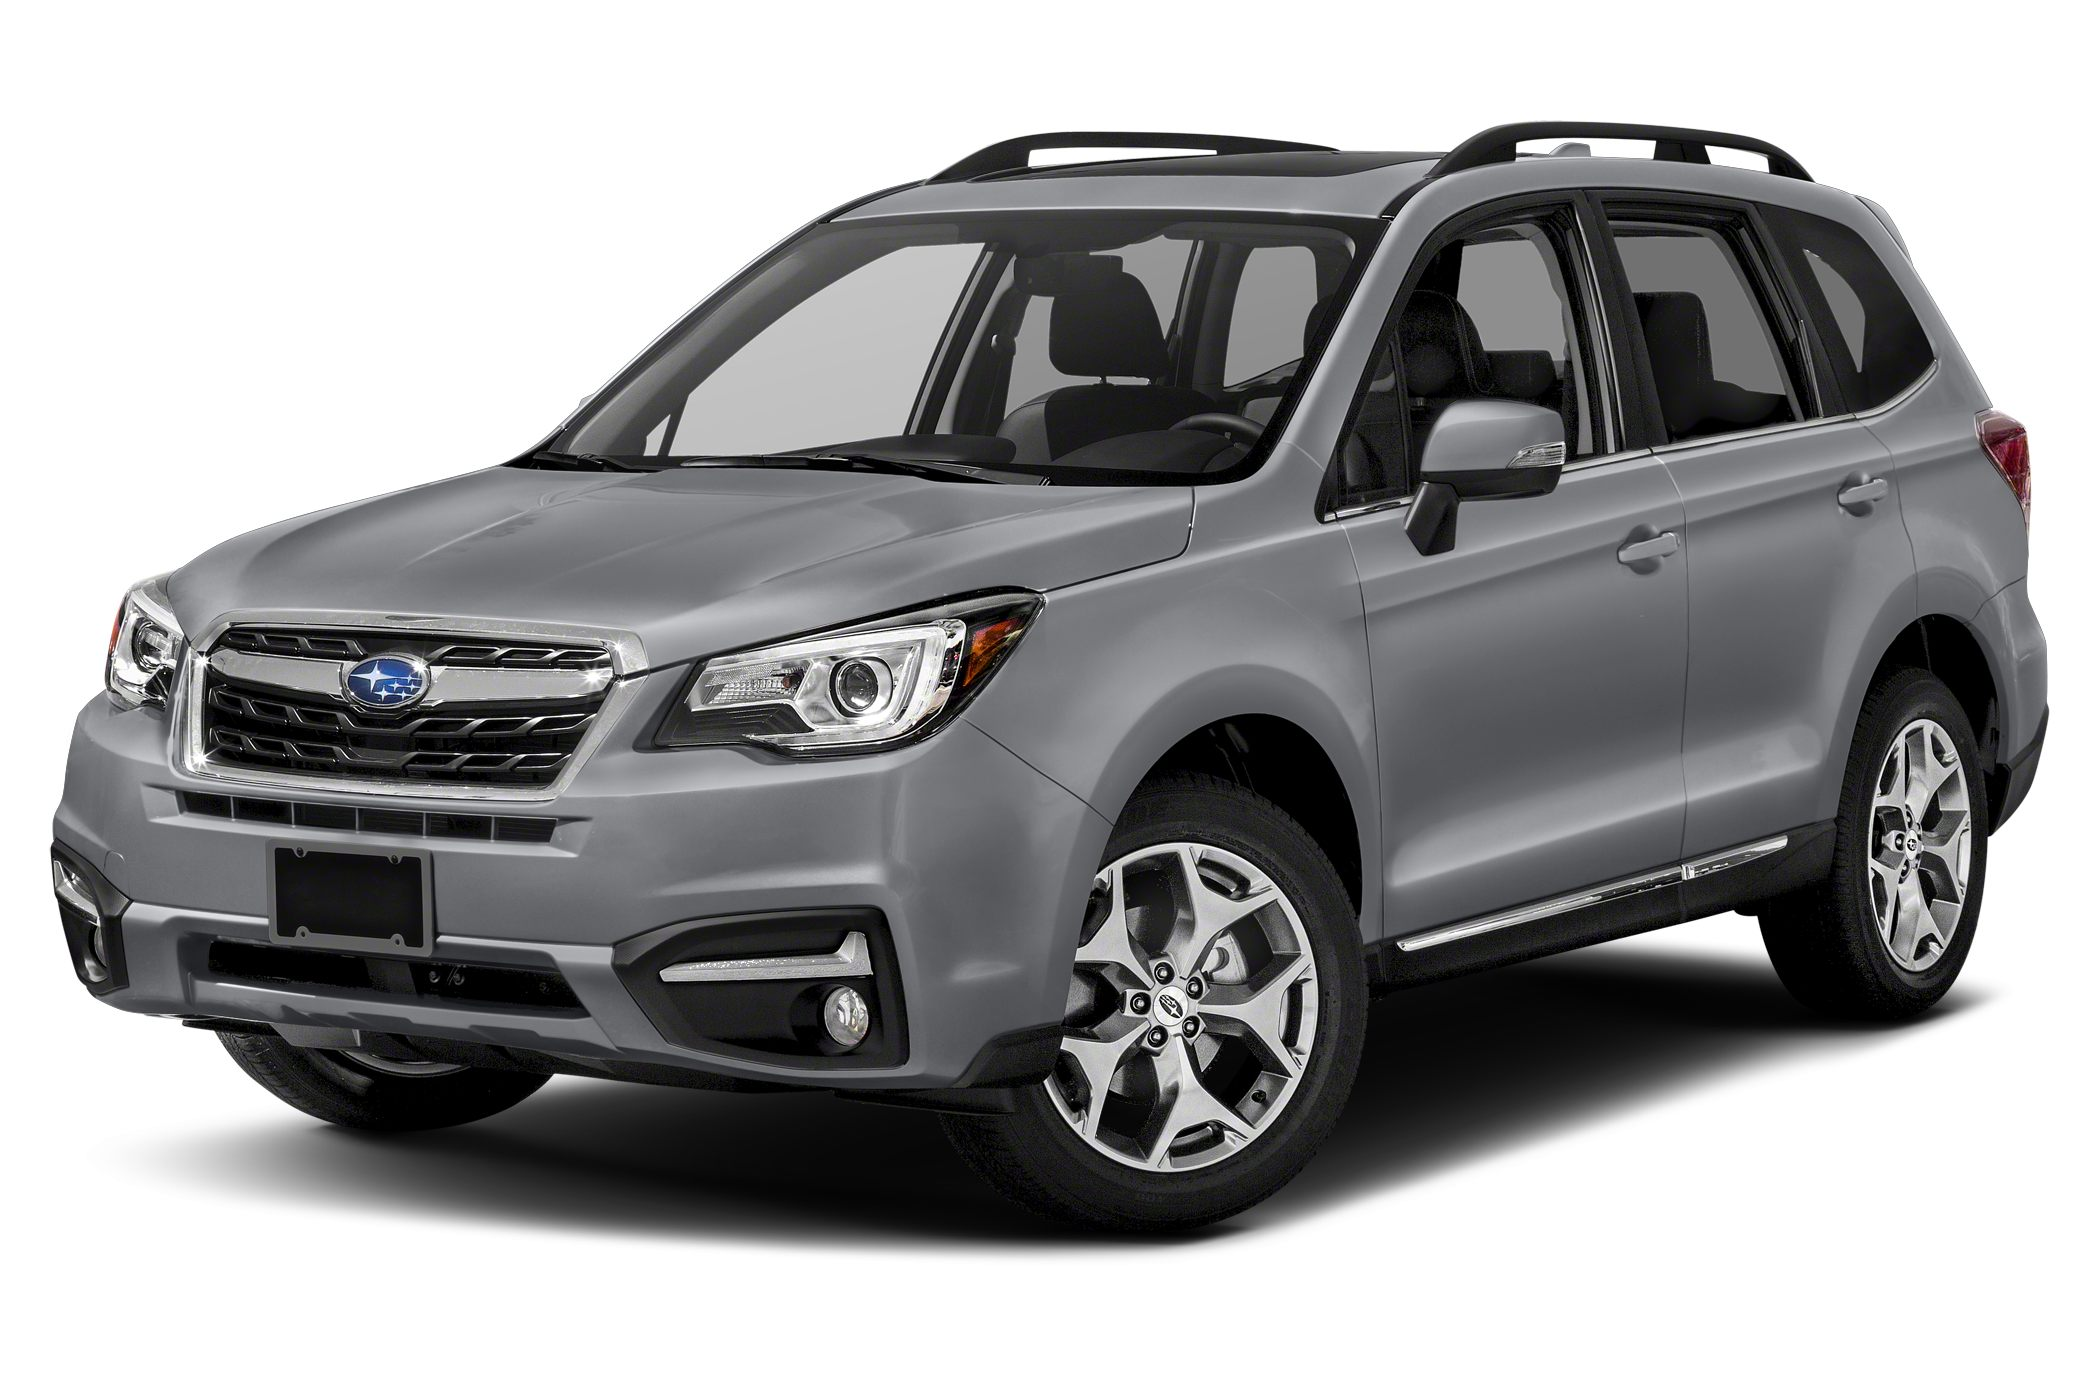 2018 Subaru Forester 2.5i Touring 4dr All-wheel Drive